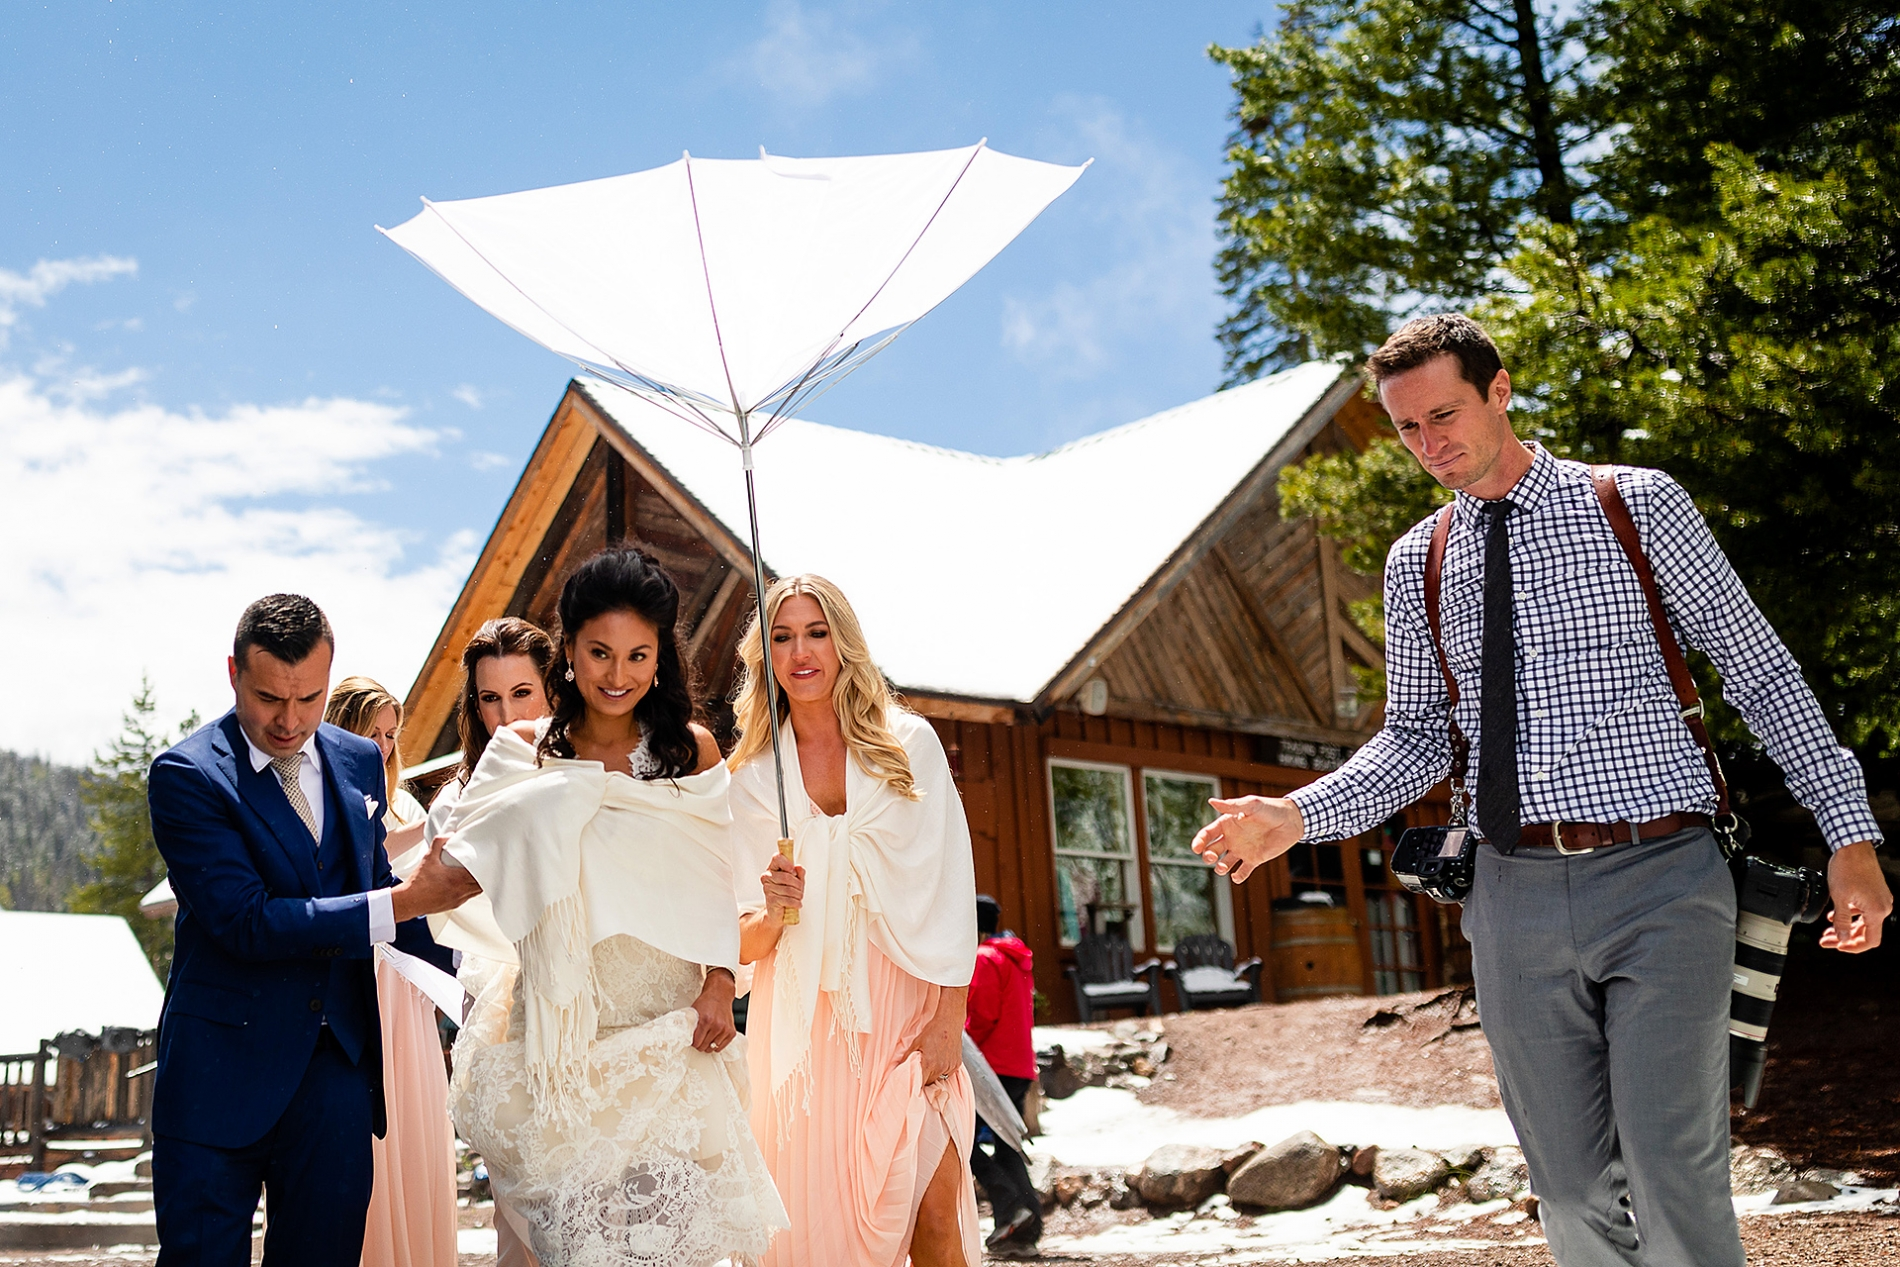 Silverthorne Colorado photographer at wedding walking with the bride under an umbrella.